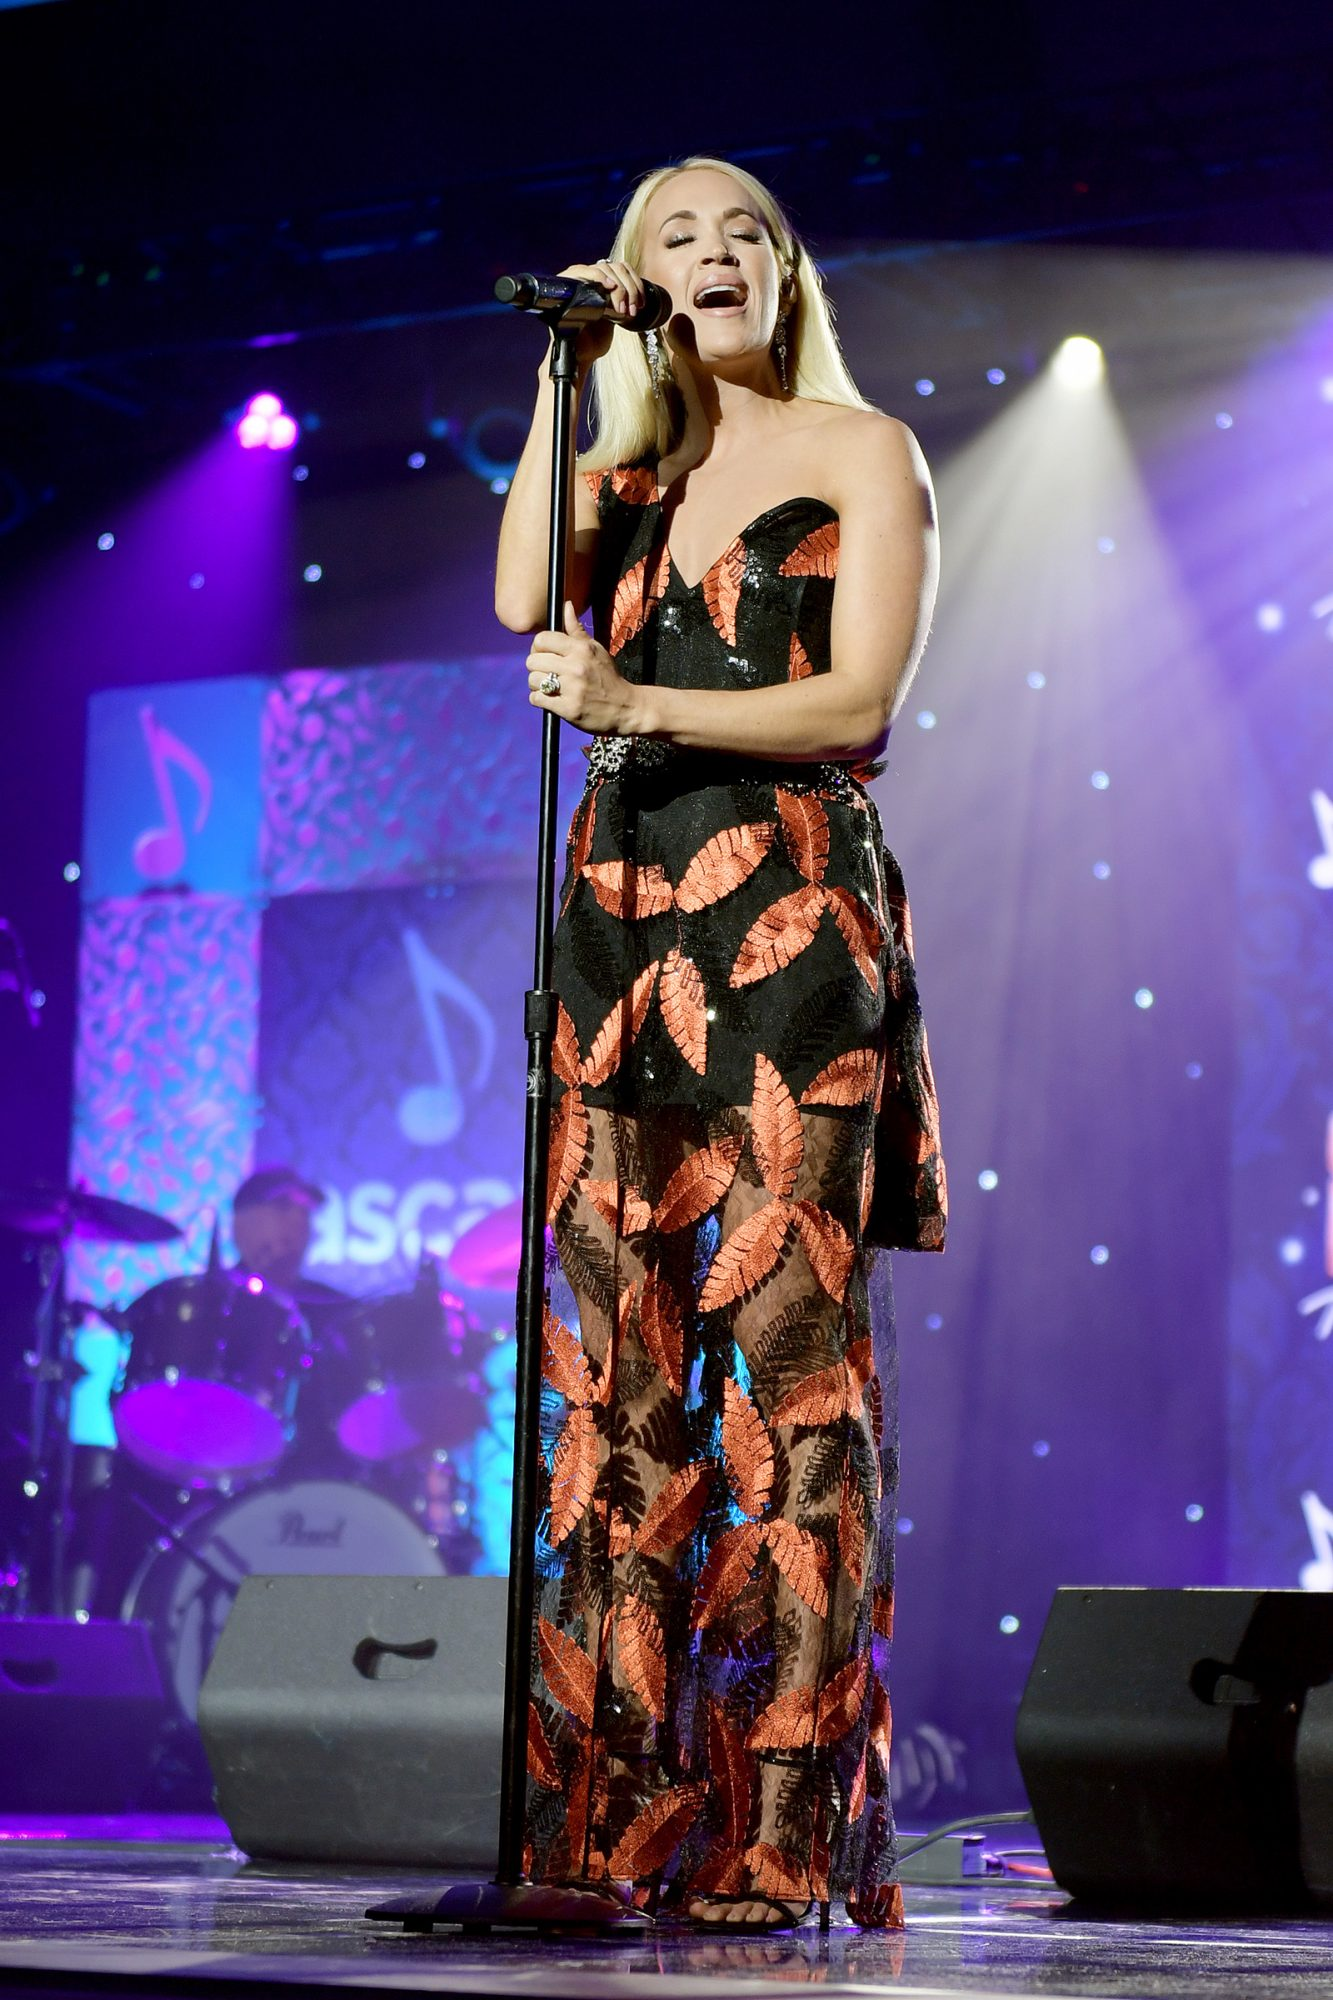 Carrie Underwood performs onstage during the 57th Annual ASCAP Country Music Awards on November 11, 2019 in Nashville, Tennessee